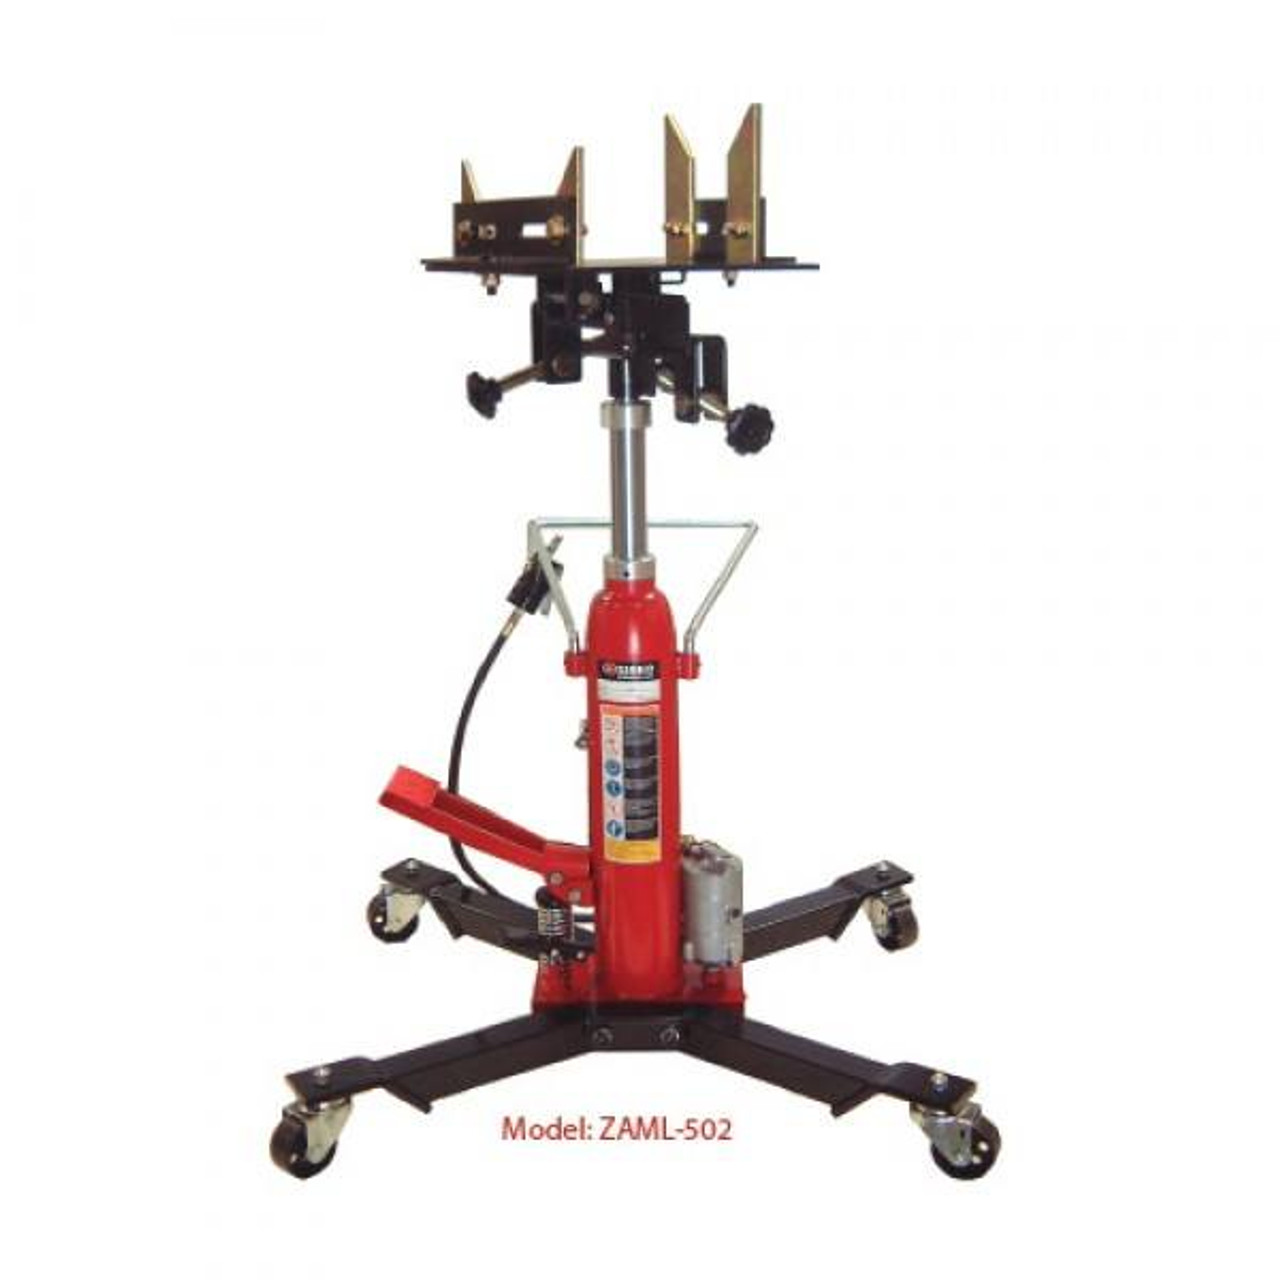 Zinko Zaml-502 1/2 Ton Telescopic Type Transmission Jack